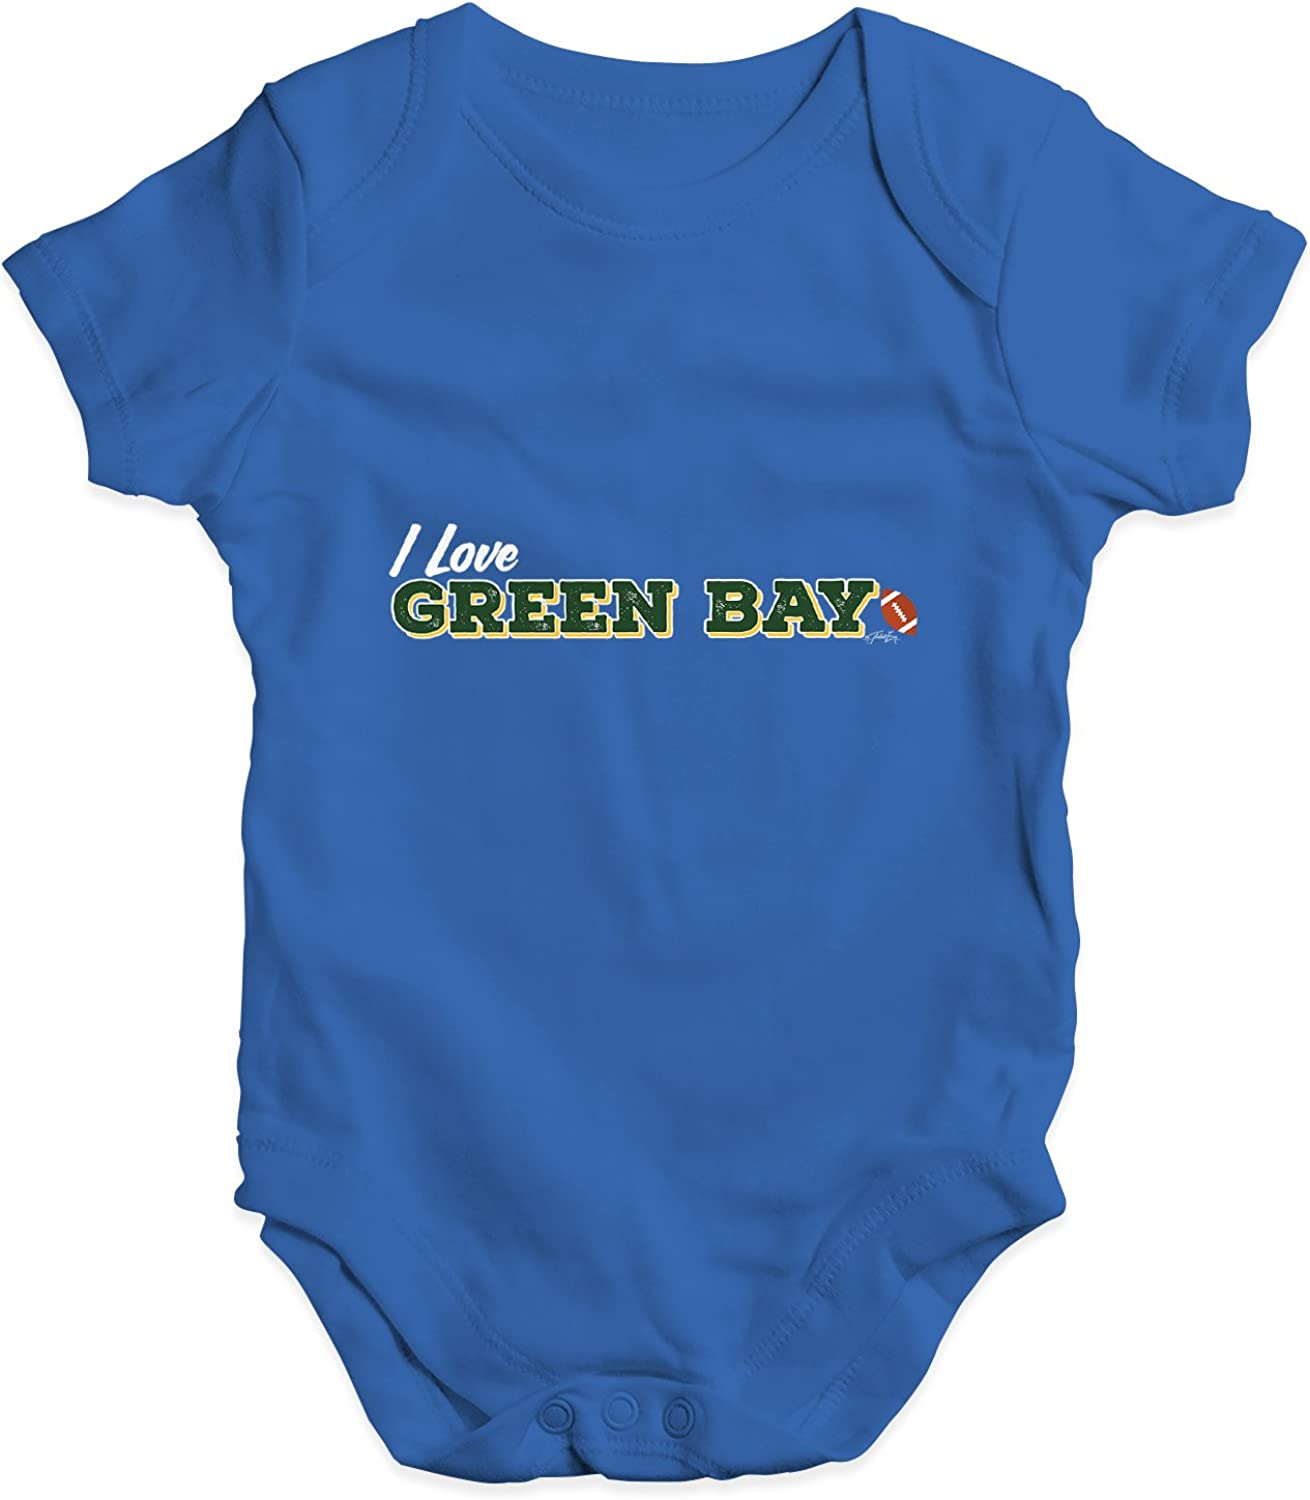 TWISTED ENVY I Love Green Bay American Football Baby Unisex Funny Infant Bodysuit Baby Grow